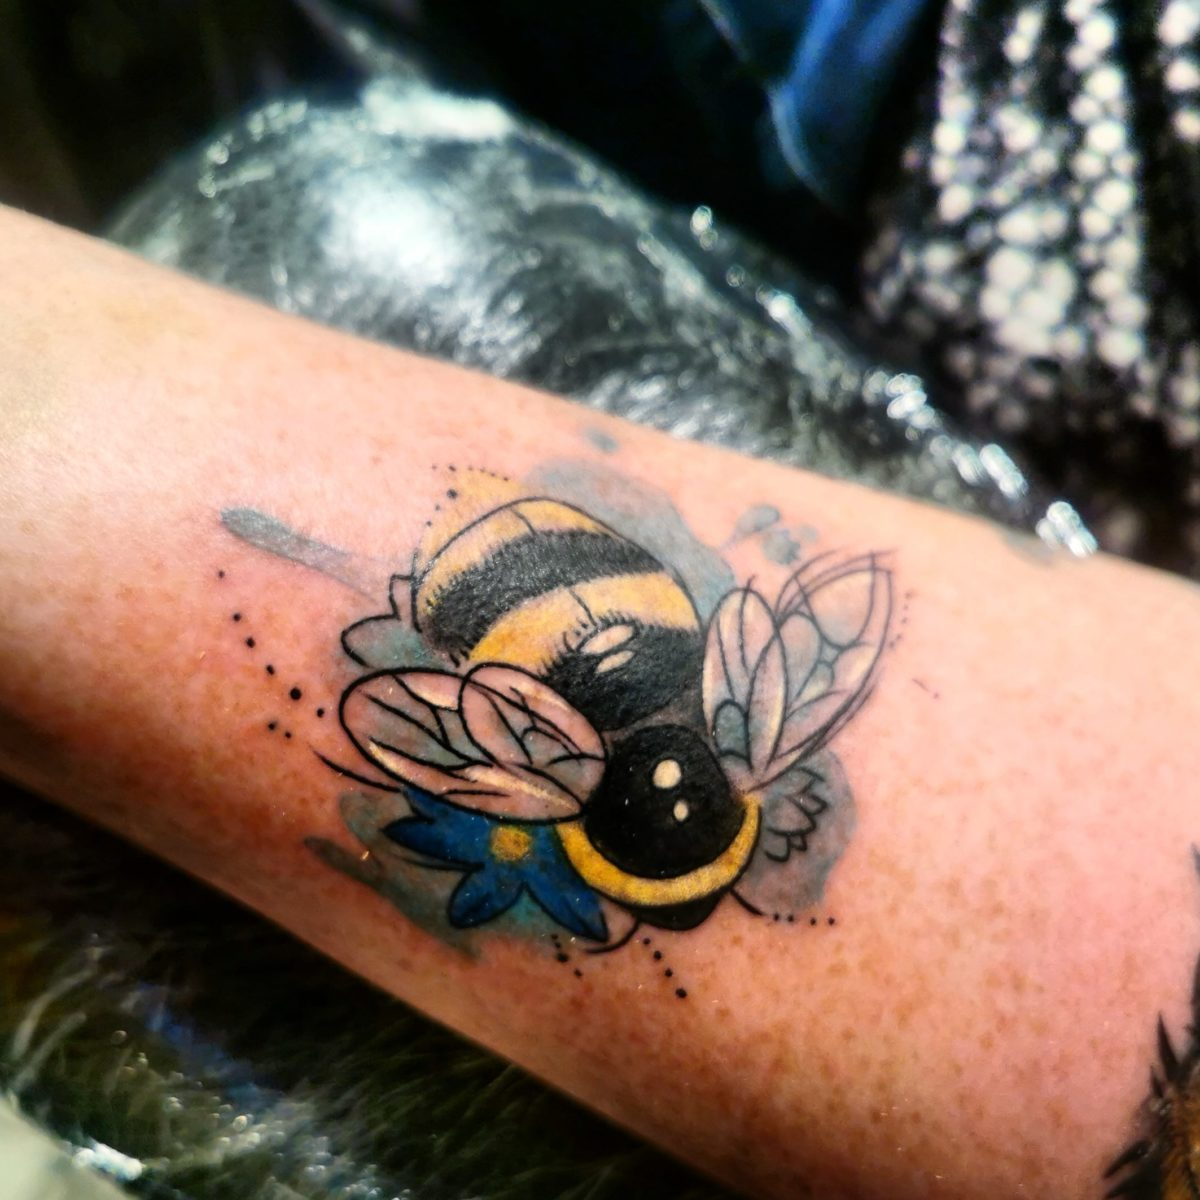 joakim-poulsen-tattoo-bee-arm